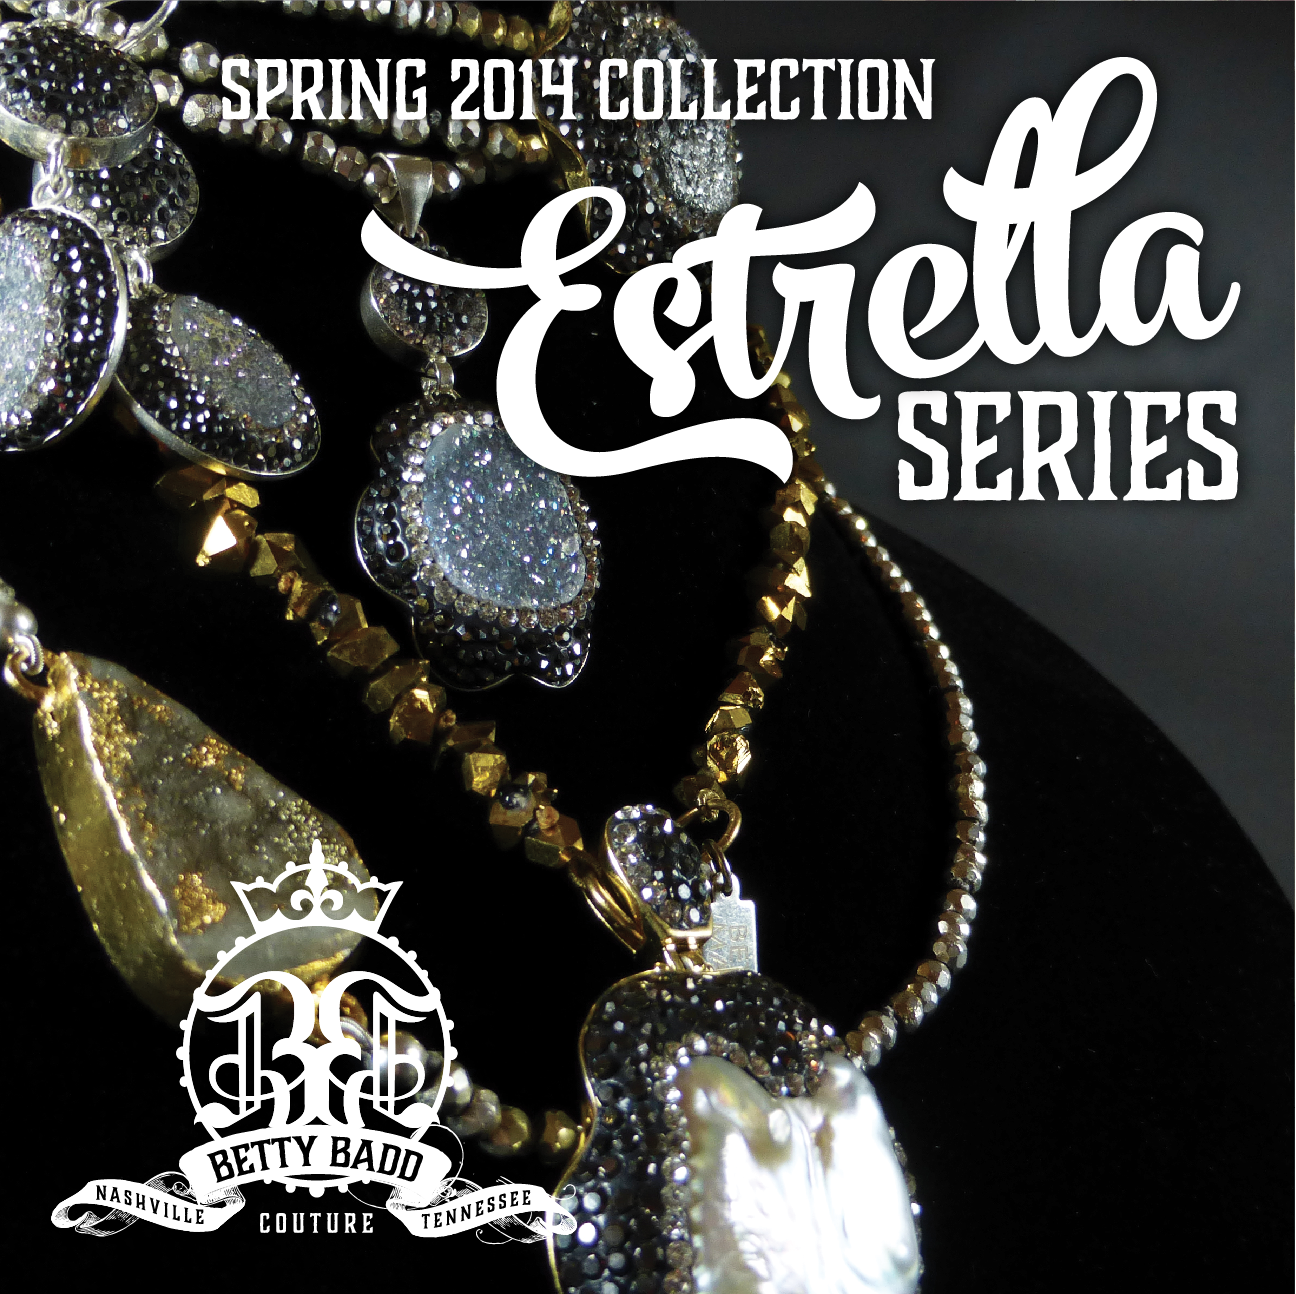 Betty Badd Couture Spring 2014 Estrella Series features beautiful Druzy crystals, Pyrite, & Vermeil